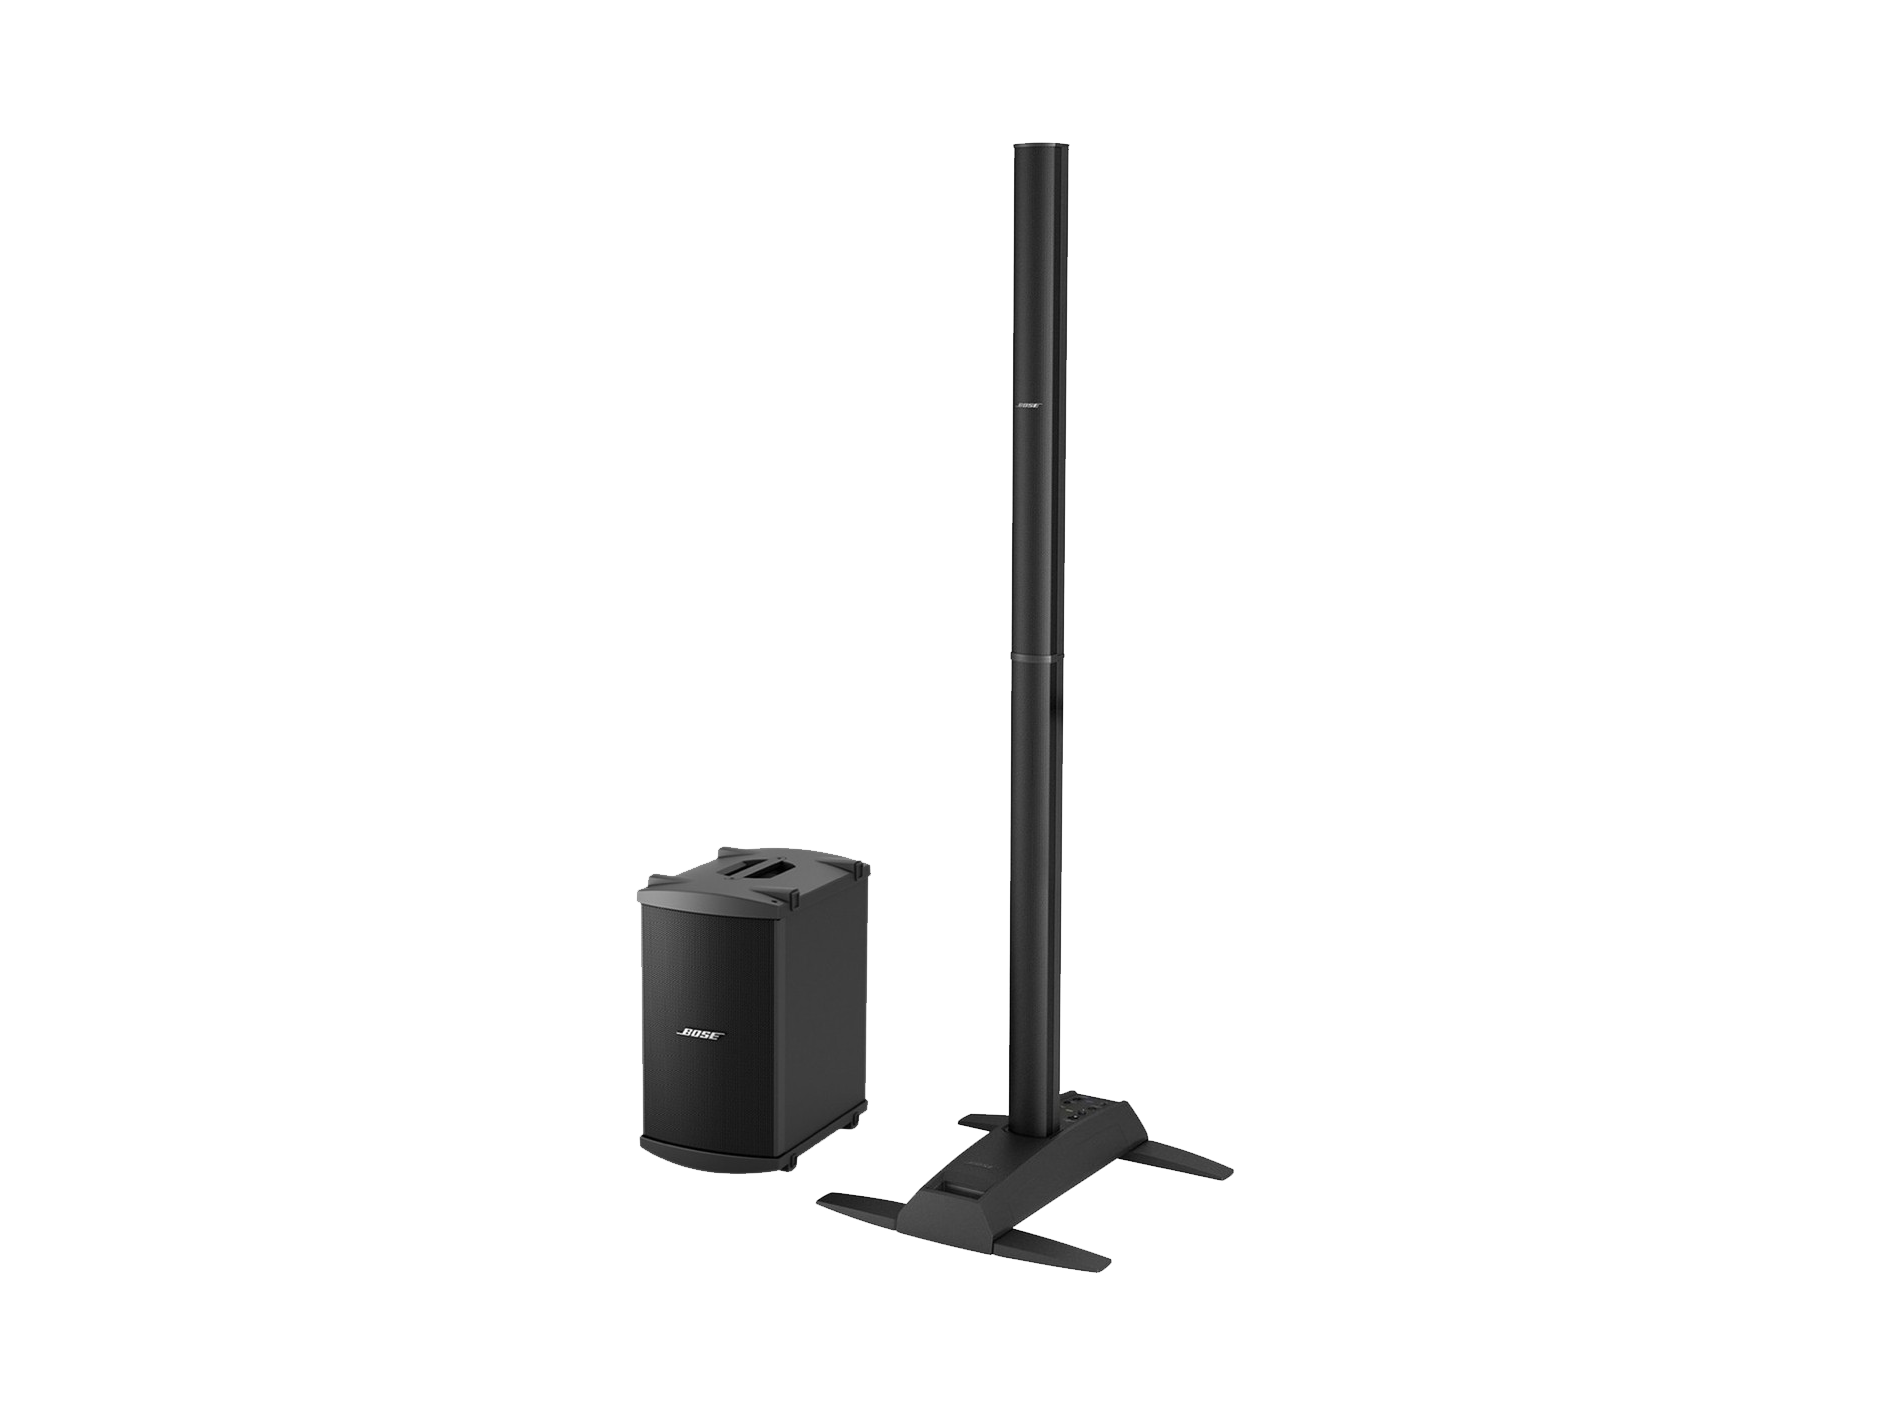 Hire a Bose L1 PA speaker system with subwoofer